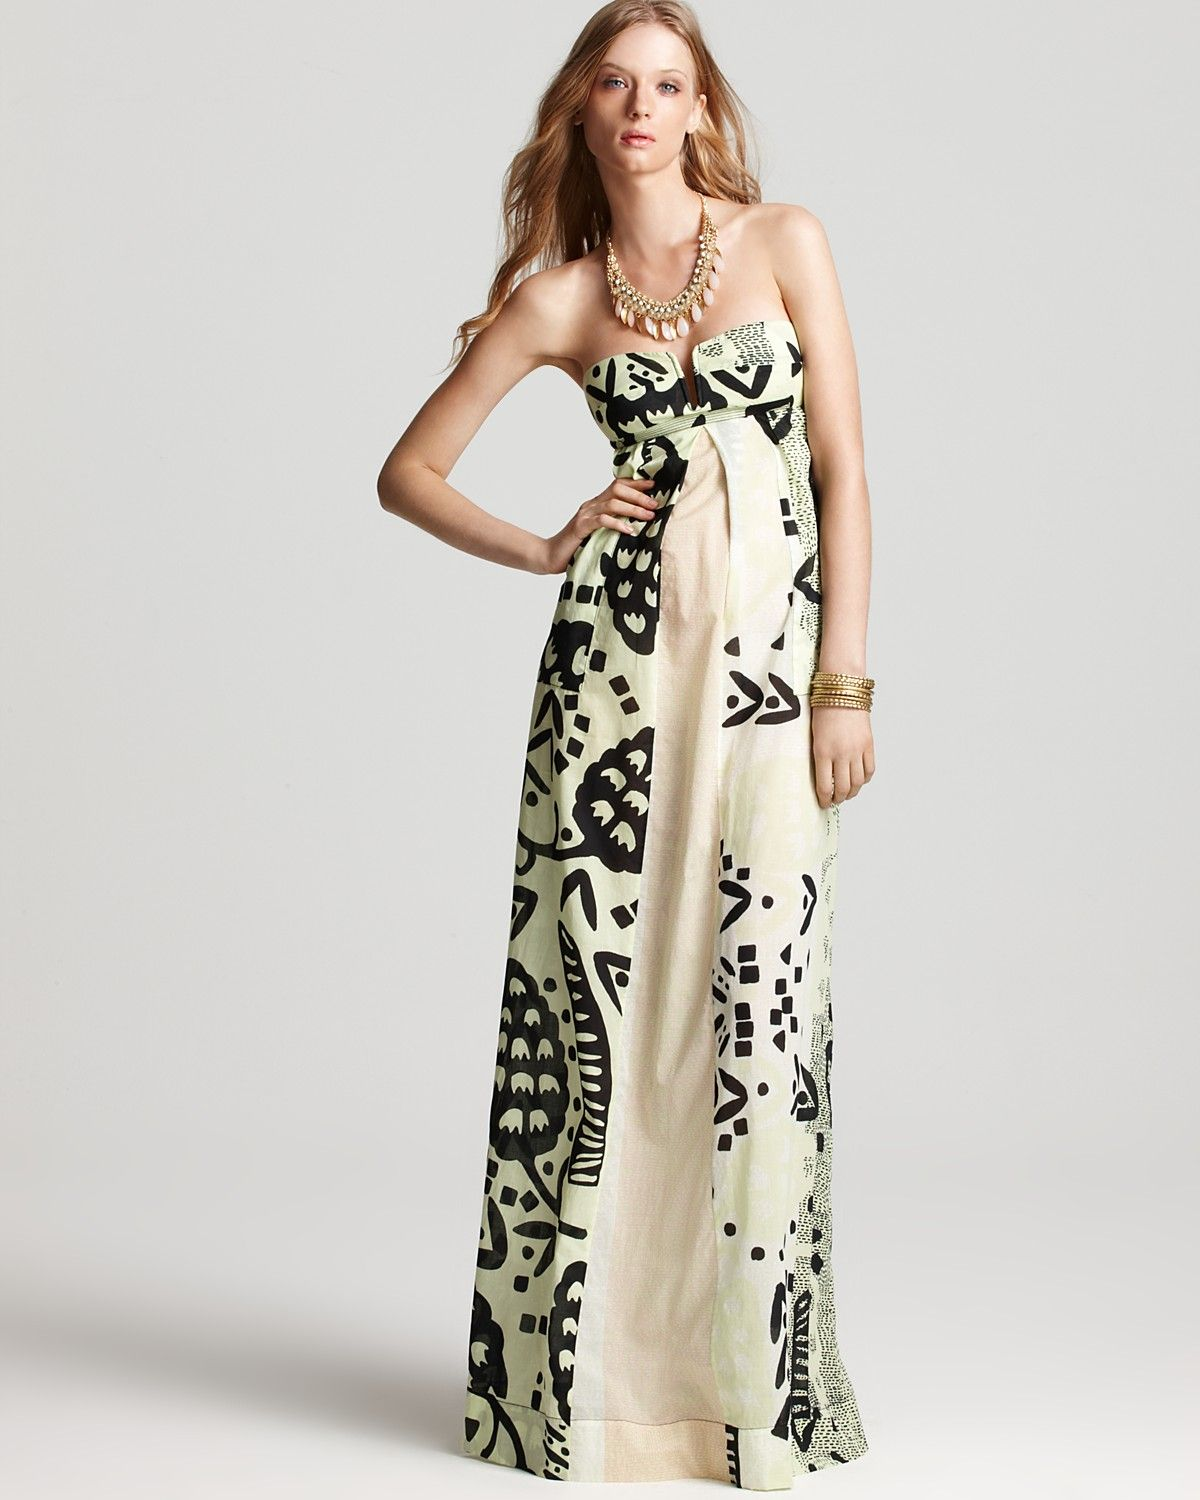 78  images about DVF on Pinterest - Wrap dresses- Sleeve and Silk ...